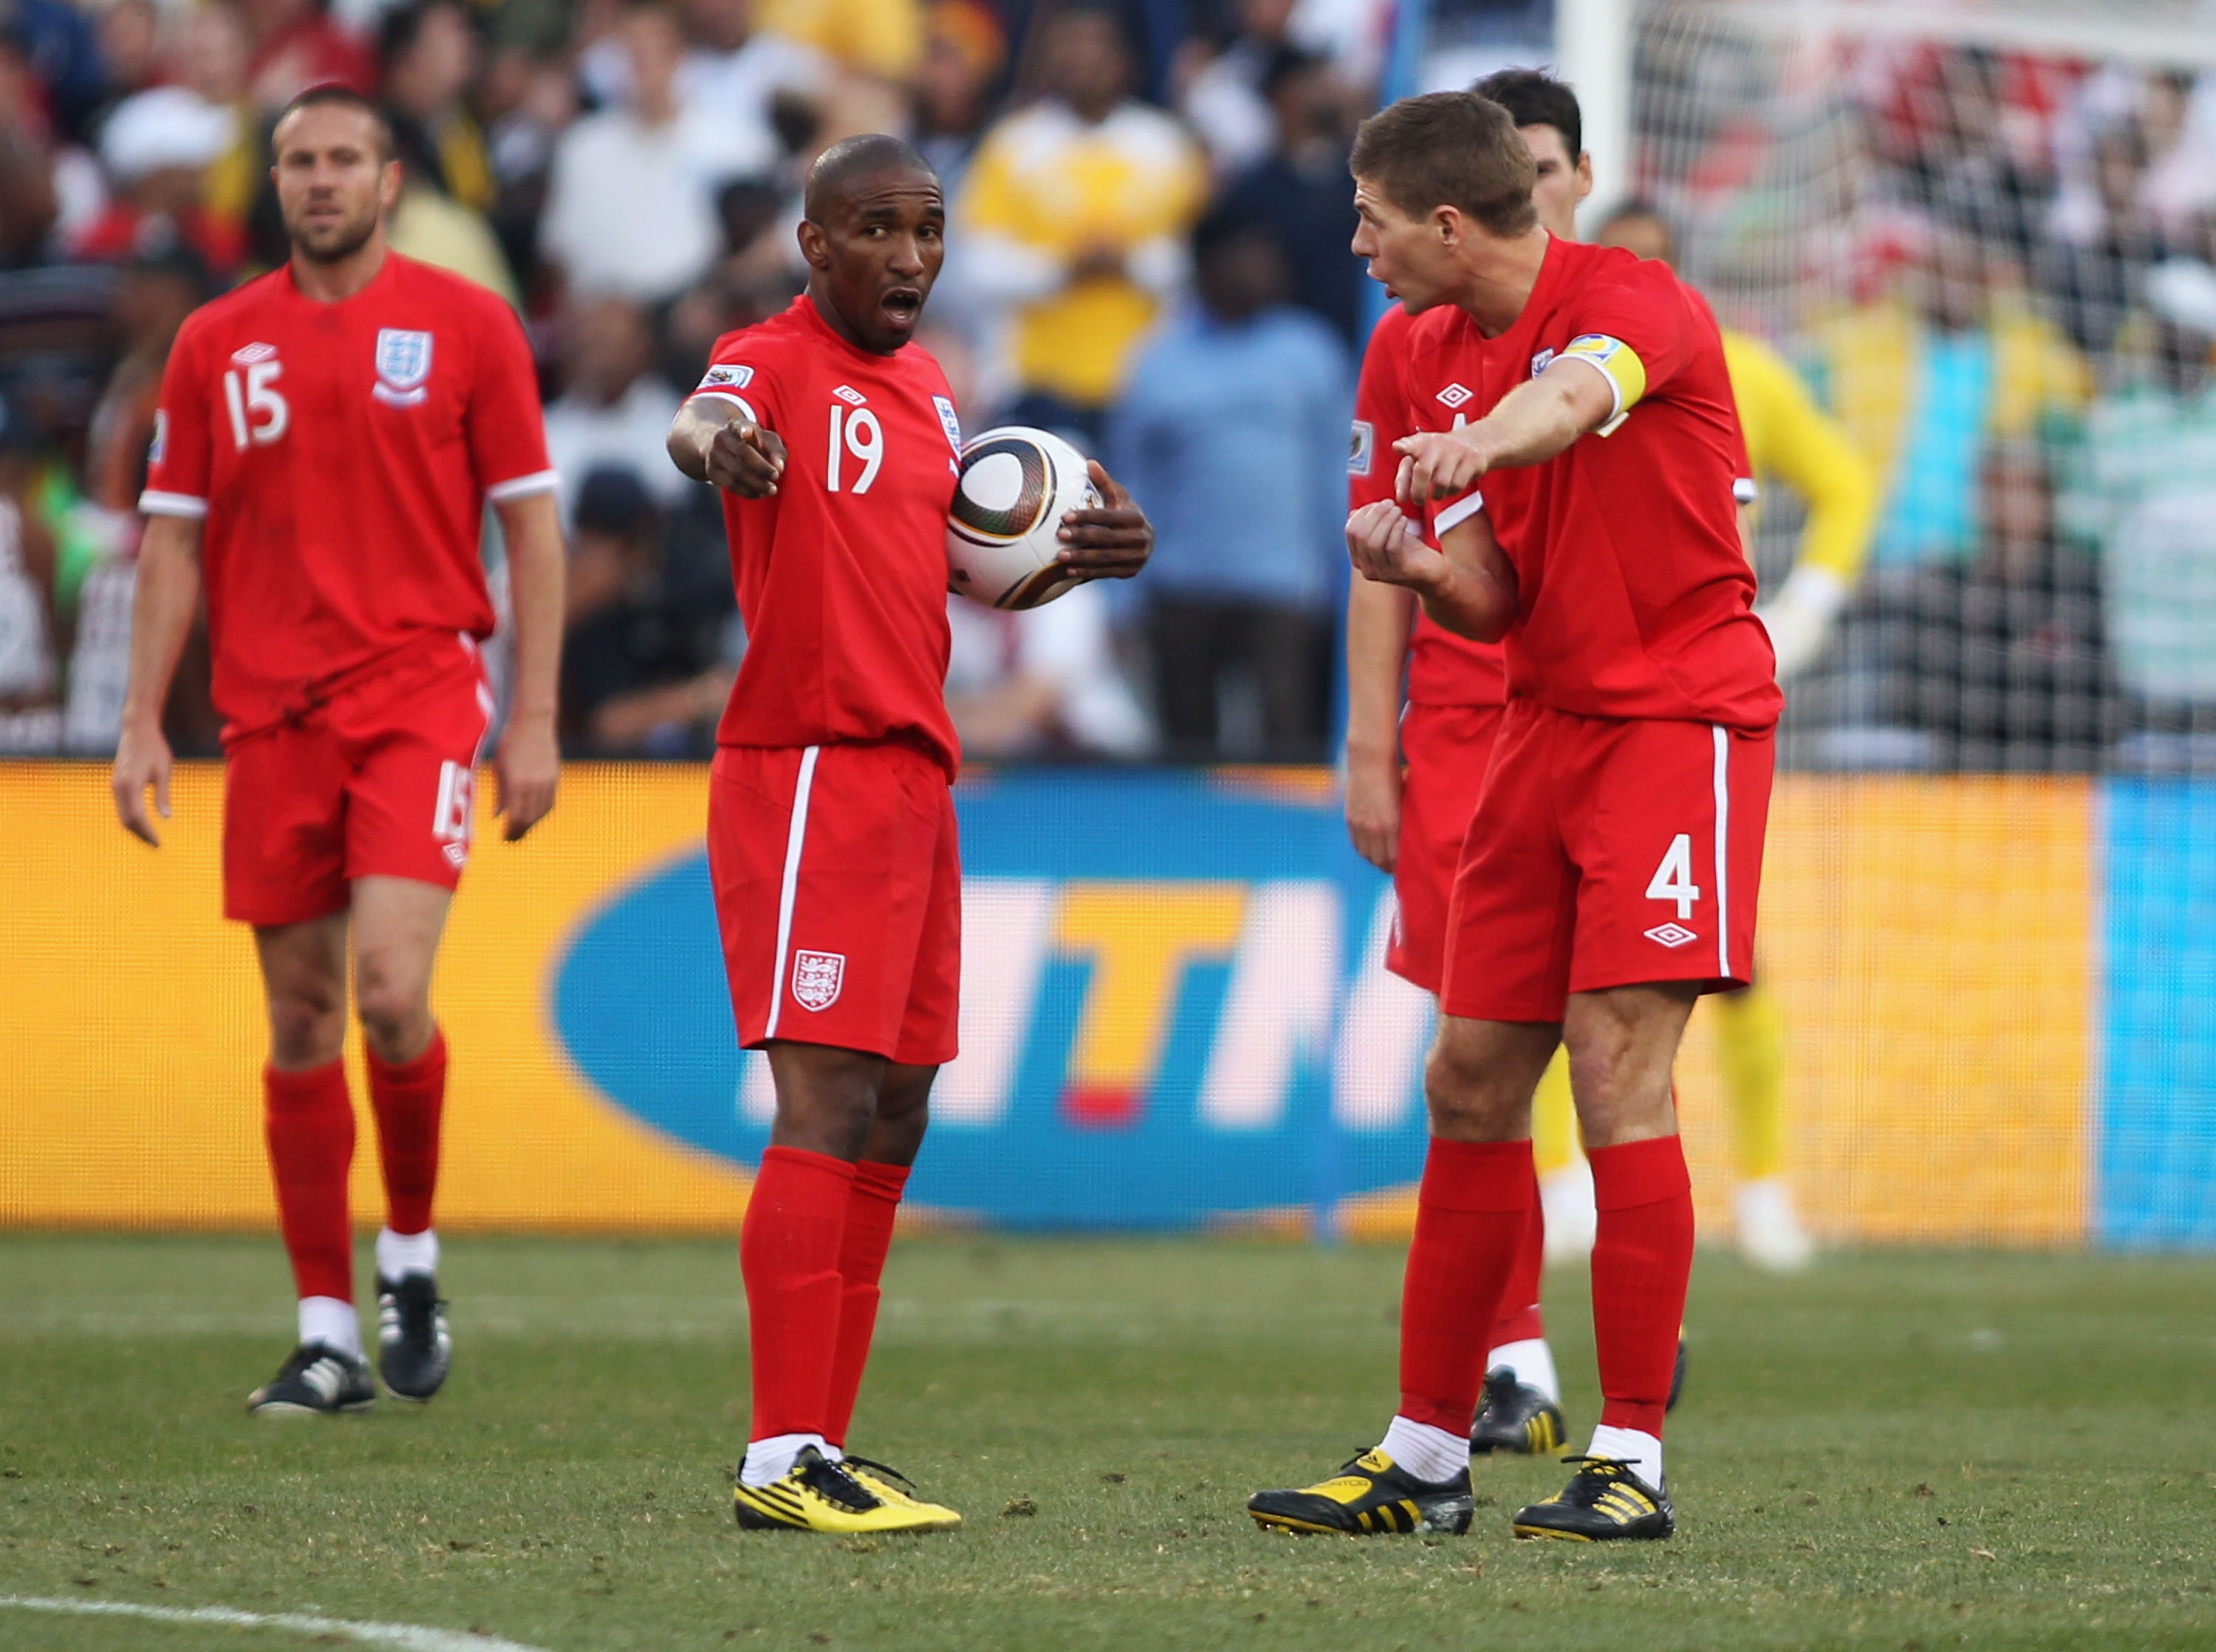 BLOEMFONTEIN, SOUTH AFRICA - JUNE 27:  Steven Gerrard and Jermain Defoe of England argue during the 2010 FIFA World Cup South Africa Round of Sixteen match between Germany and England at Free State Stadium on June 27, 2010 in Bloemfontein, South Africa.